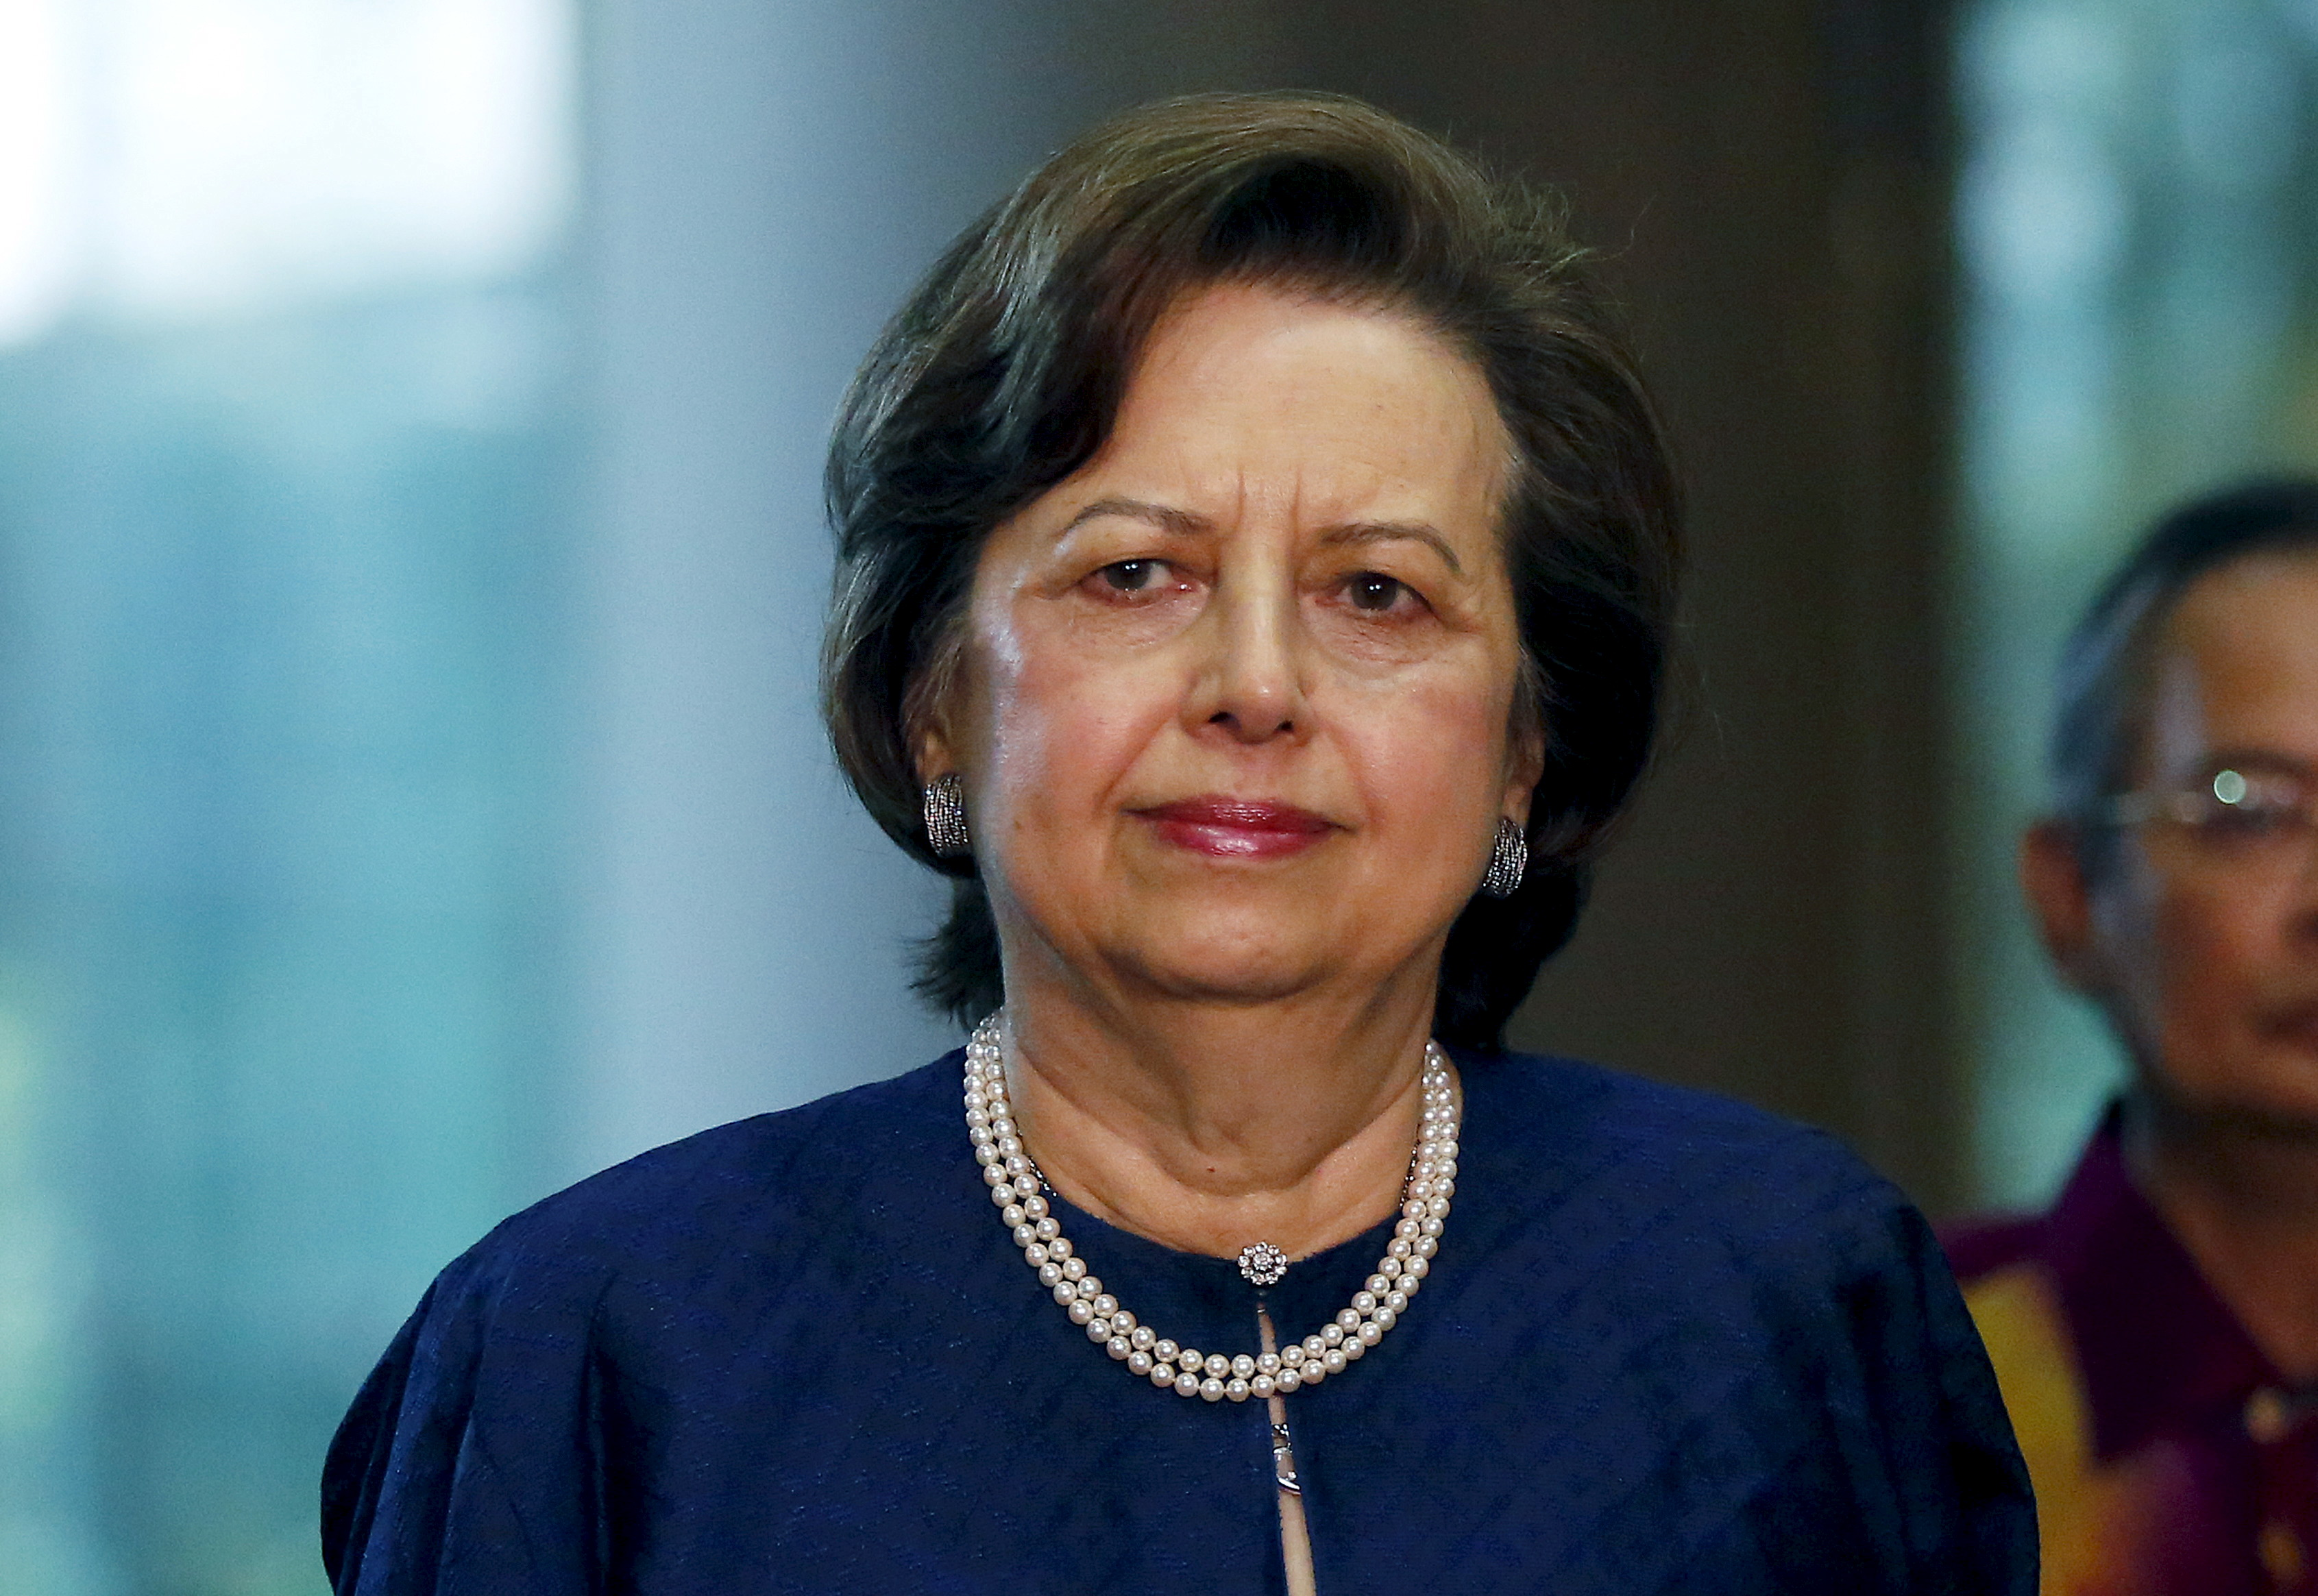 Malaysia's Bank Negara Governor Zeti Akhtar Aziz arrives at an event announcing revisions to the fiscal budget in Putrajaya, Malaysia, January 28, 2016.  REUTERS/Olivia Harris/File Photo